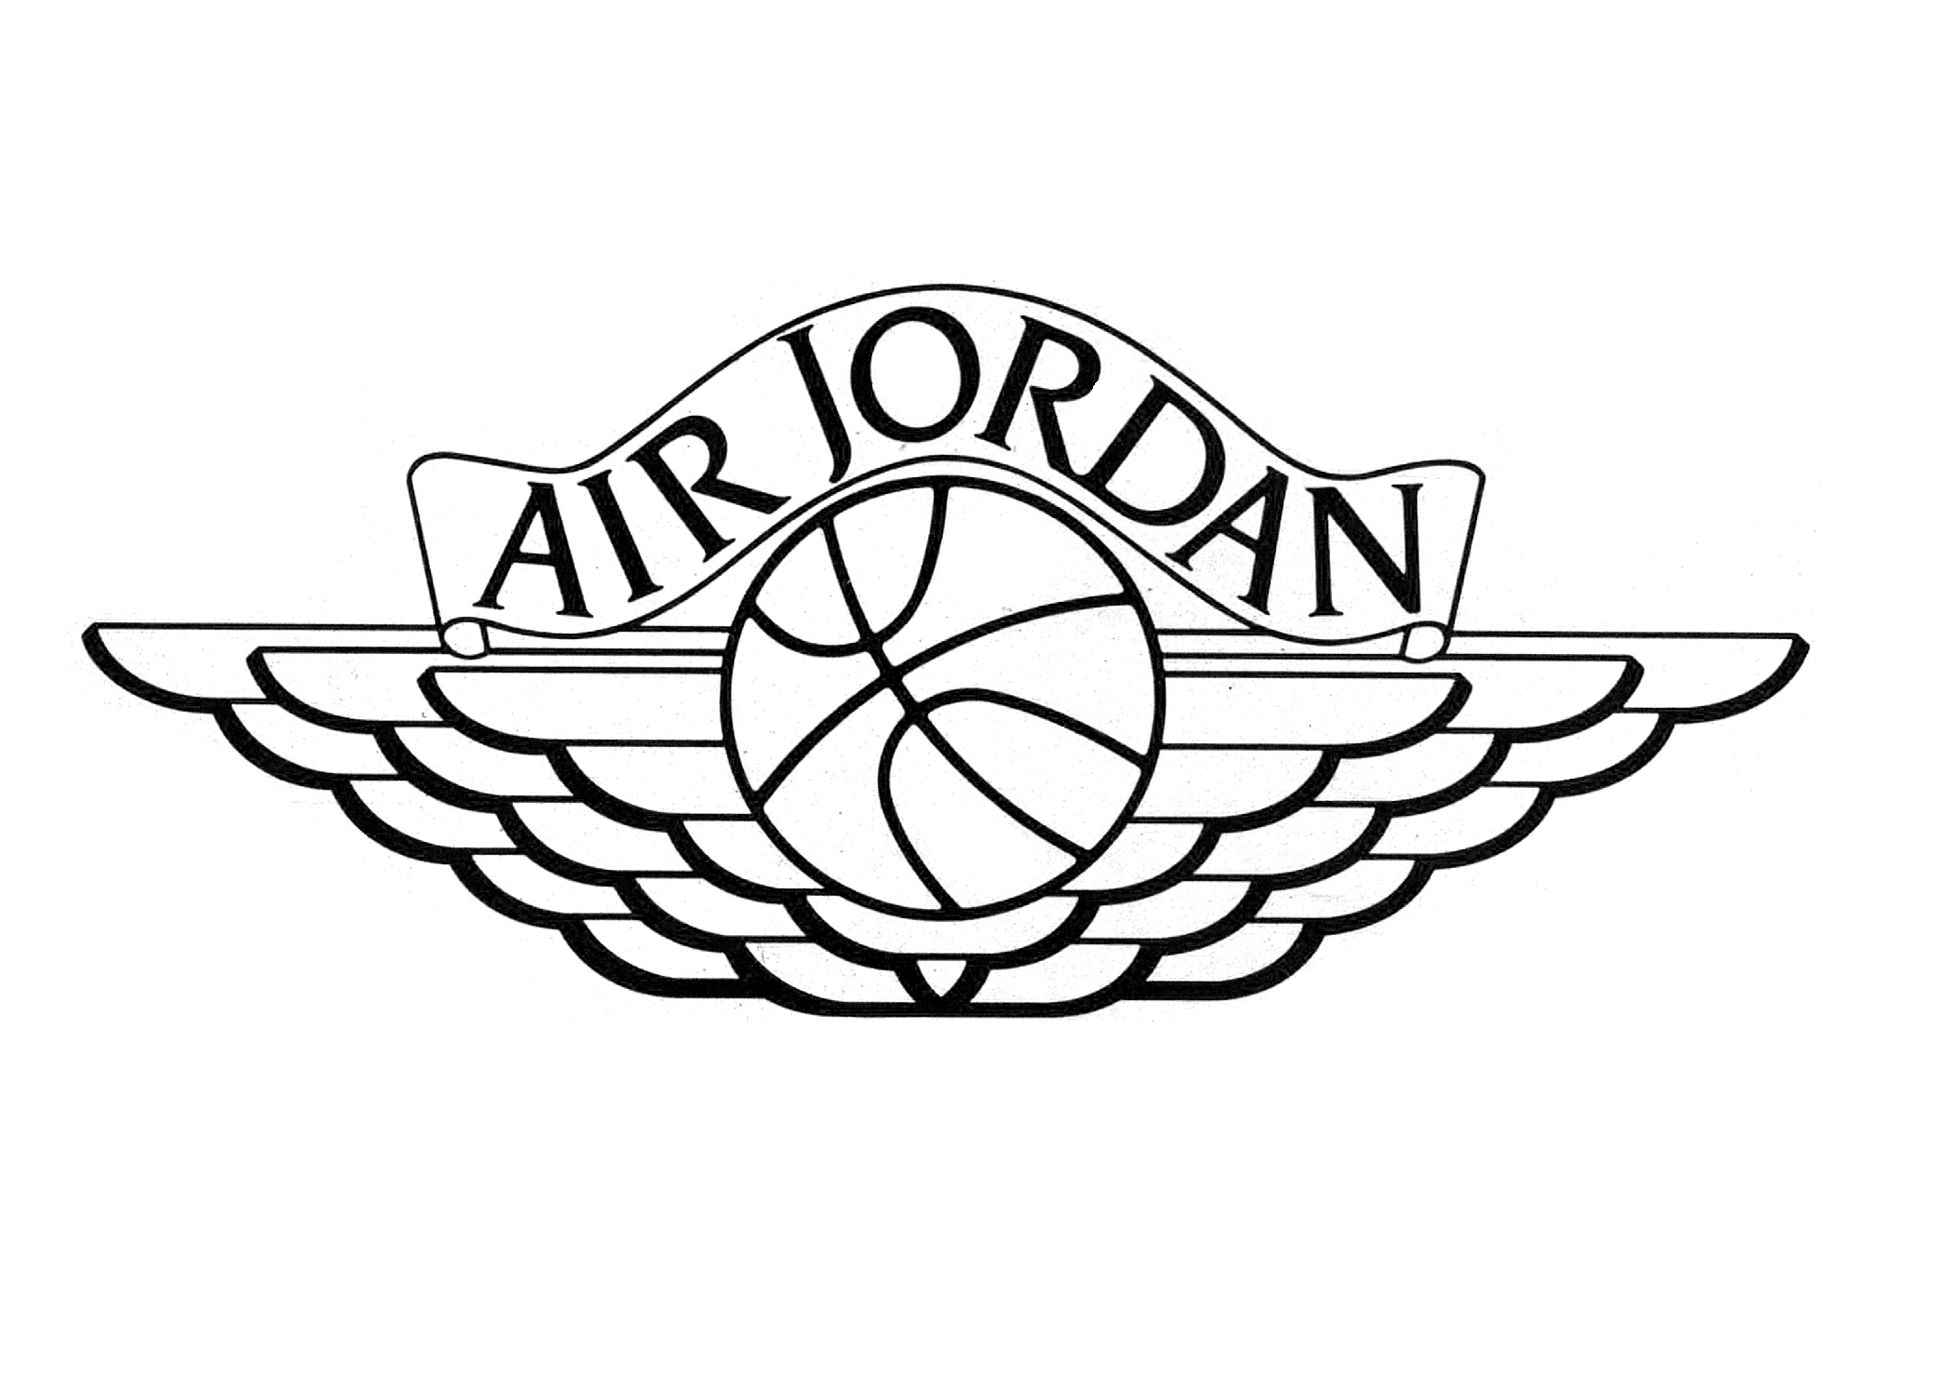 air jordan first logo